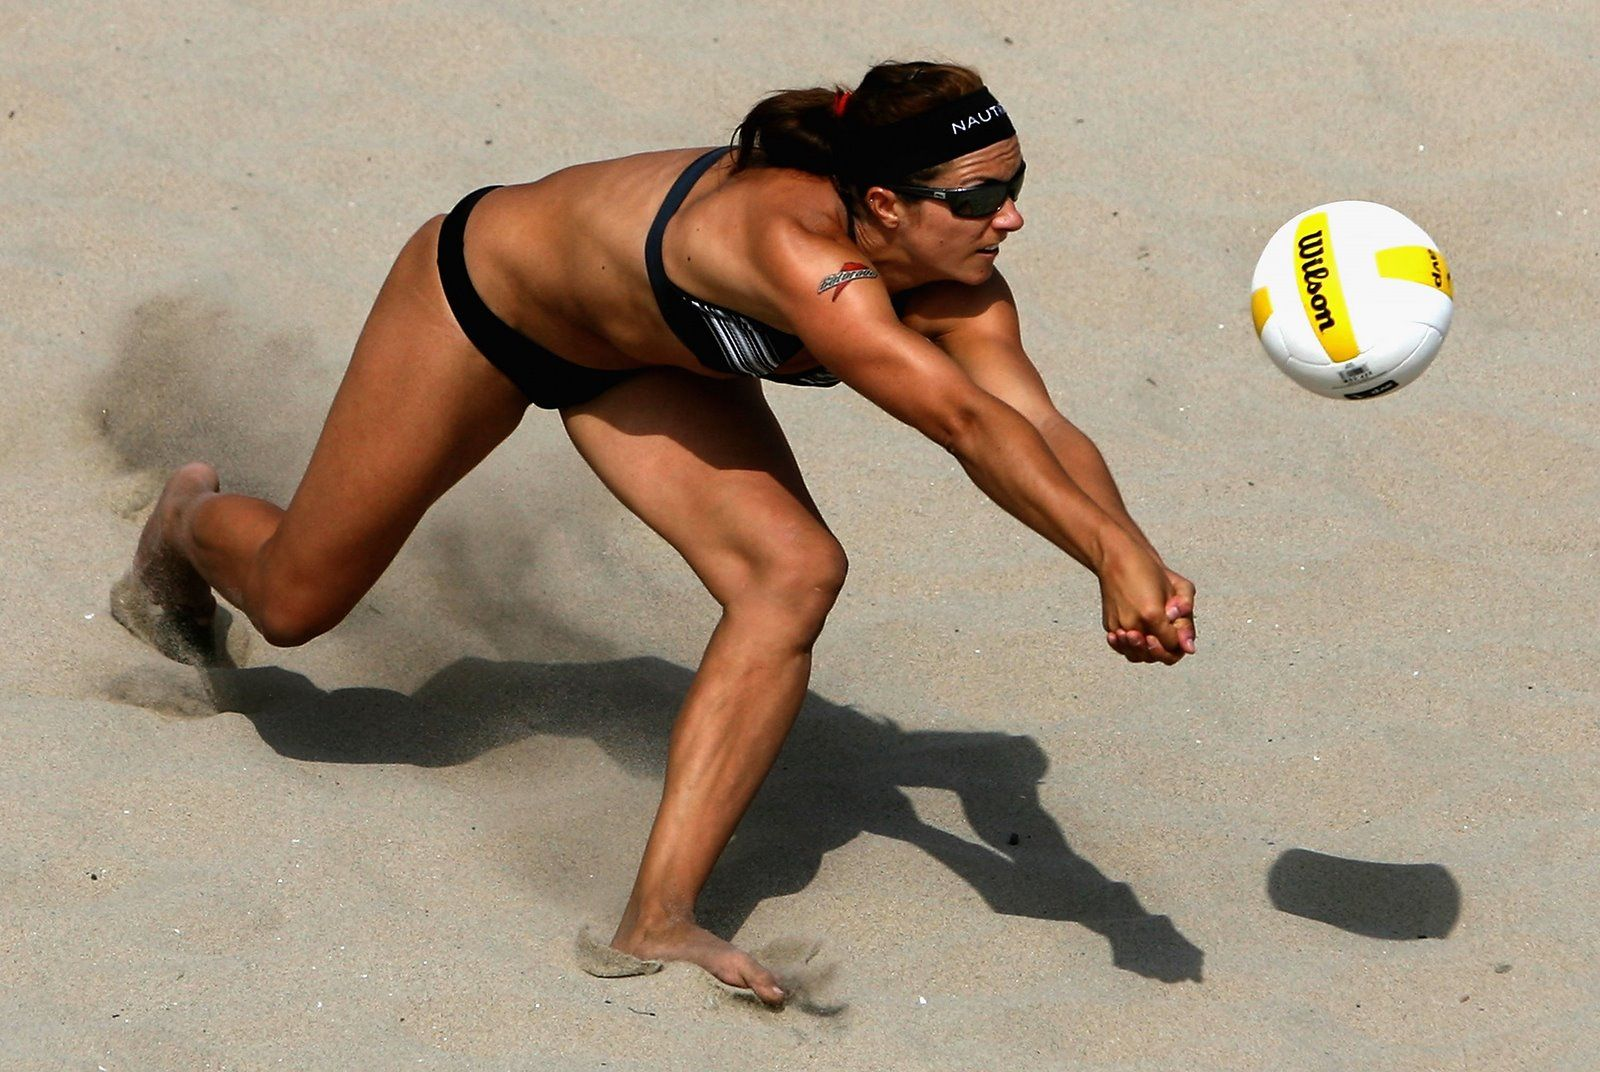 Good Advertising Works Motivational Ads That Get Us To The Gym Misty May Treanor Fun Workouts Beach Volleyball